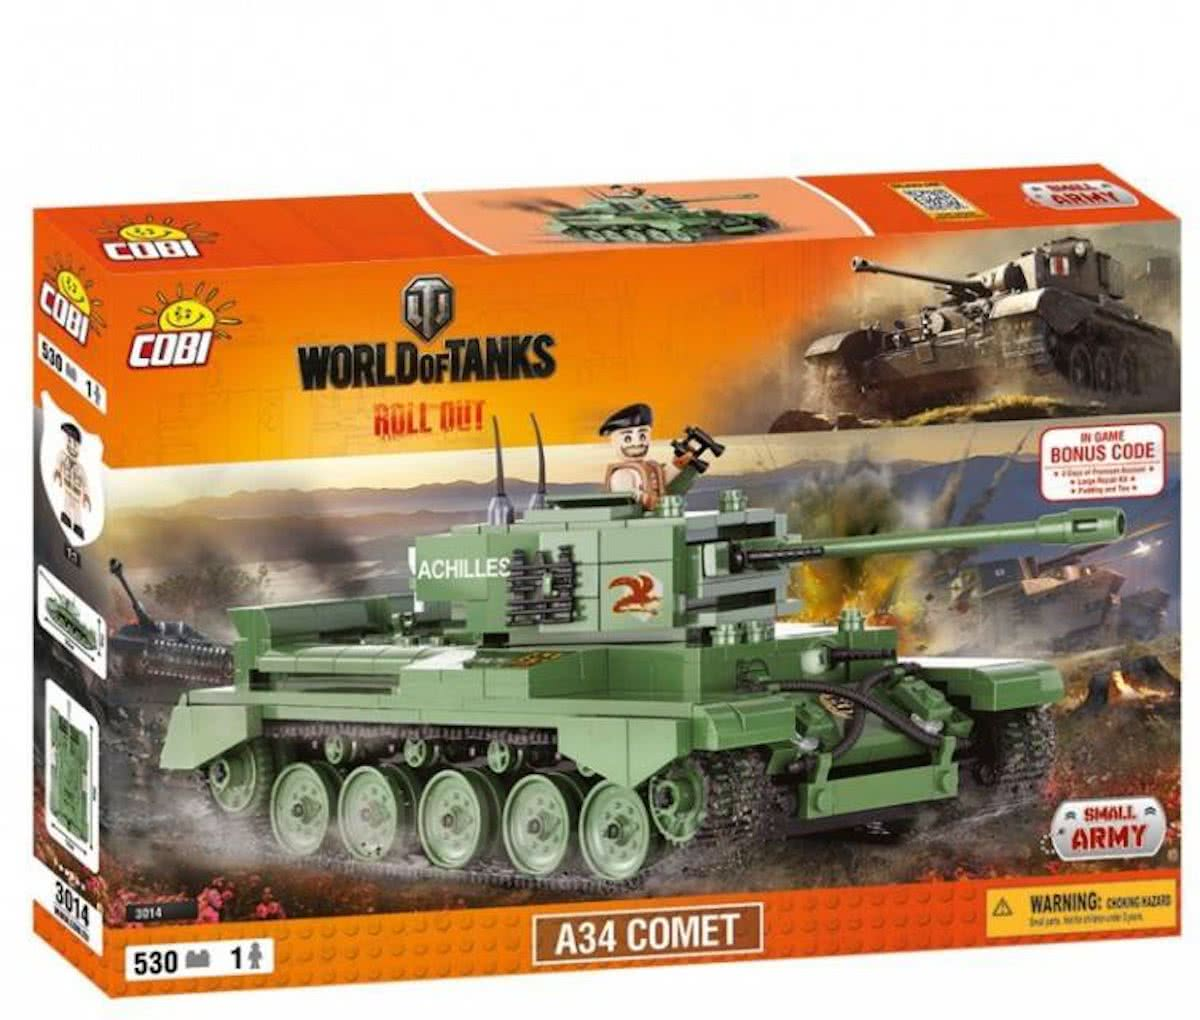 Cobi - Small Army World of Tanks - A34 COMET (3014)